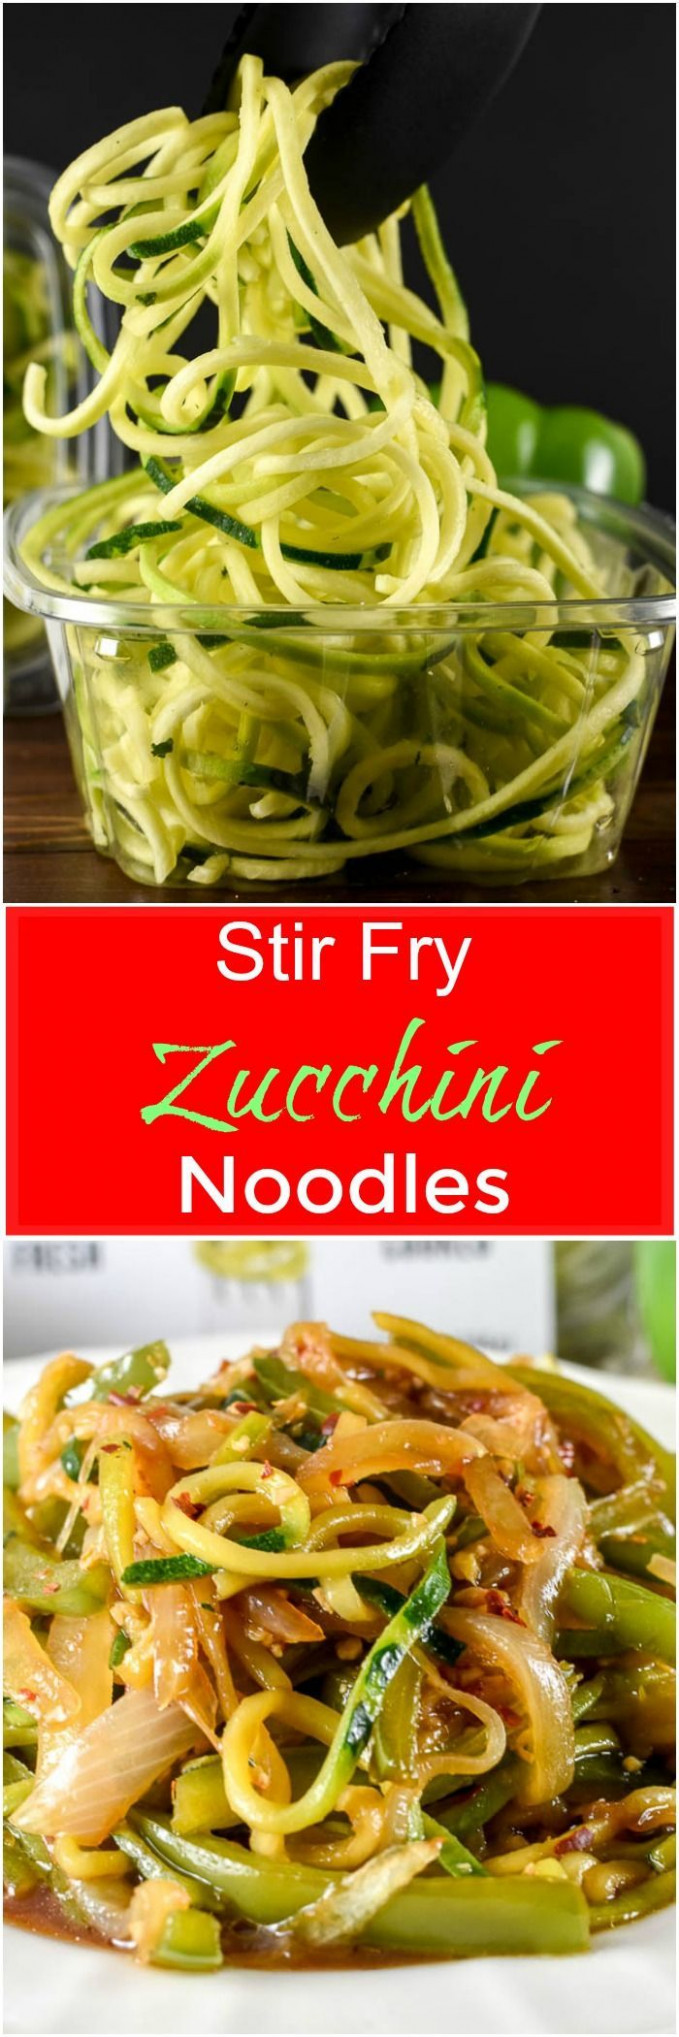 Healthy Recipes : Stir Fry Zucchini Noodles, or zoodles ..